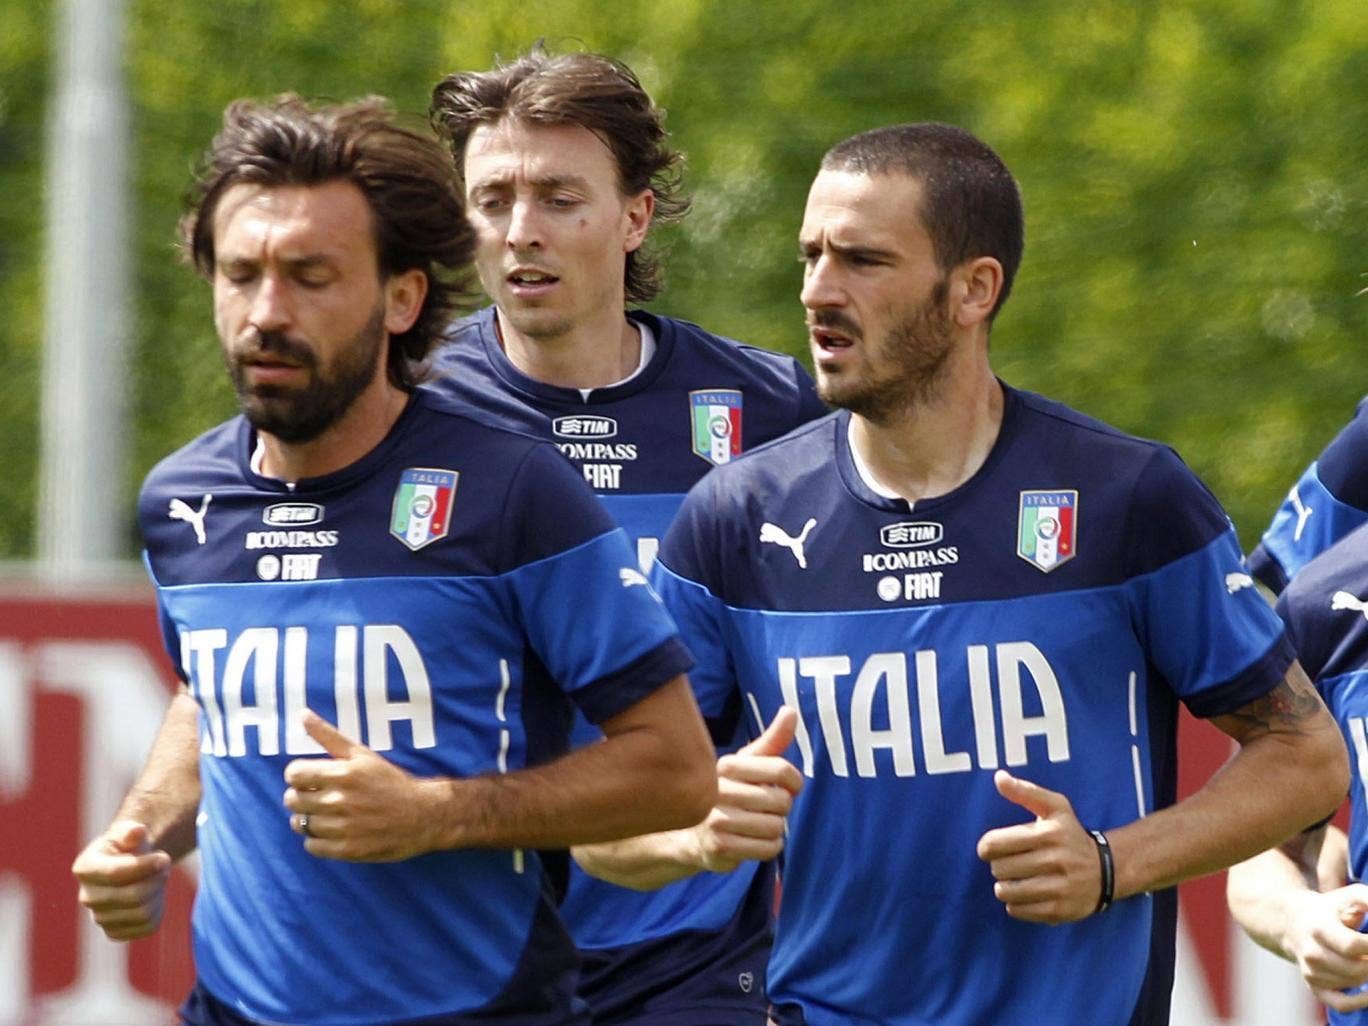 Andrea Pirlo, Riccardo Montolivo and Ciro Immobile in training with Italy before tonight's friendly with Ireland at Craven Cottage